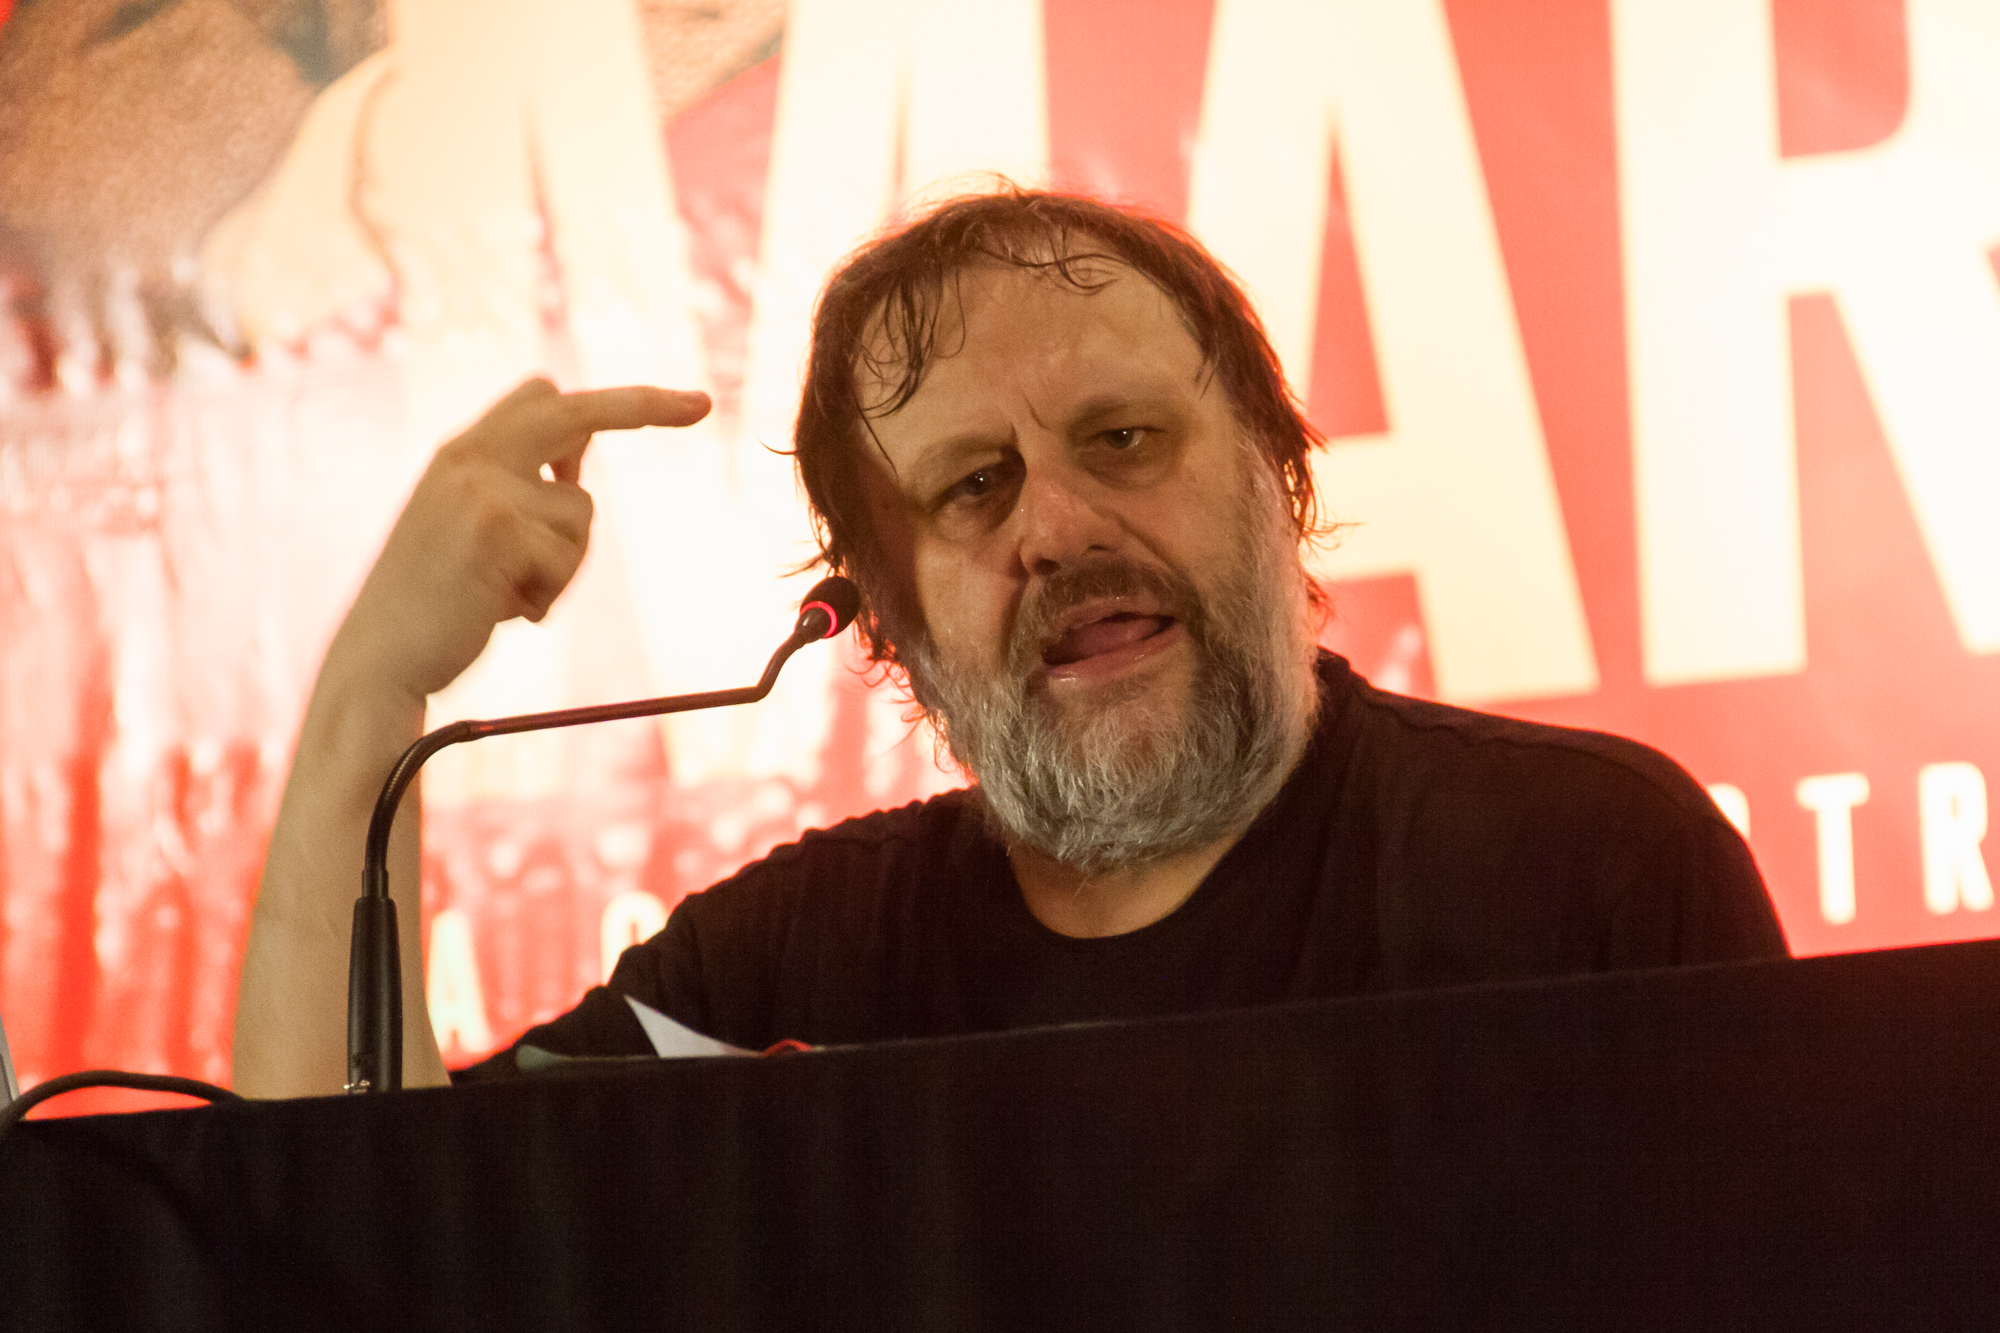 Slavoj Žižek - by Palestra Slavoj Žižek, Secom UnB, Foto: Mariana Costa, 12 March 2013, 20:20 (Slavoj_Žižek_2013_8556931759.jpg) (CC BY 2.0 [https://creativecommons.org/licenses/by/2.0/]), via Flickr